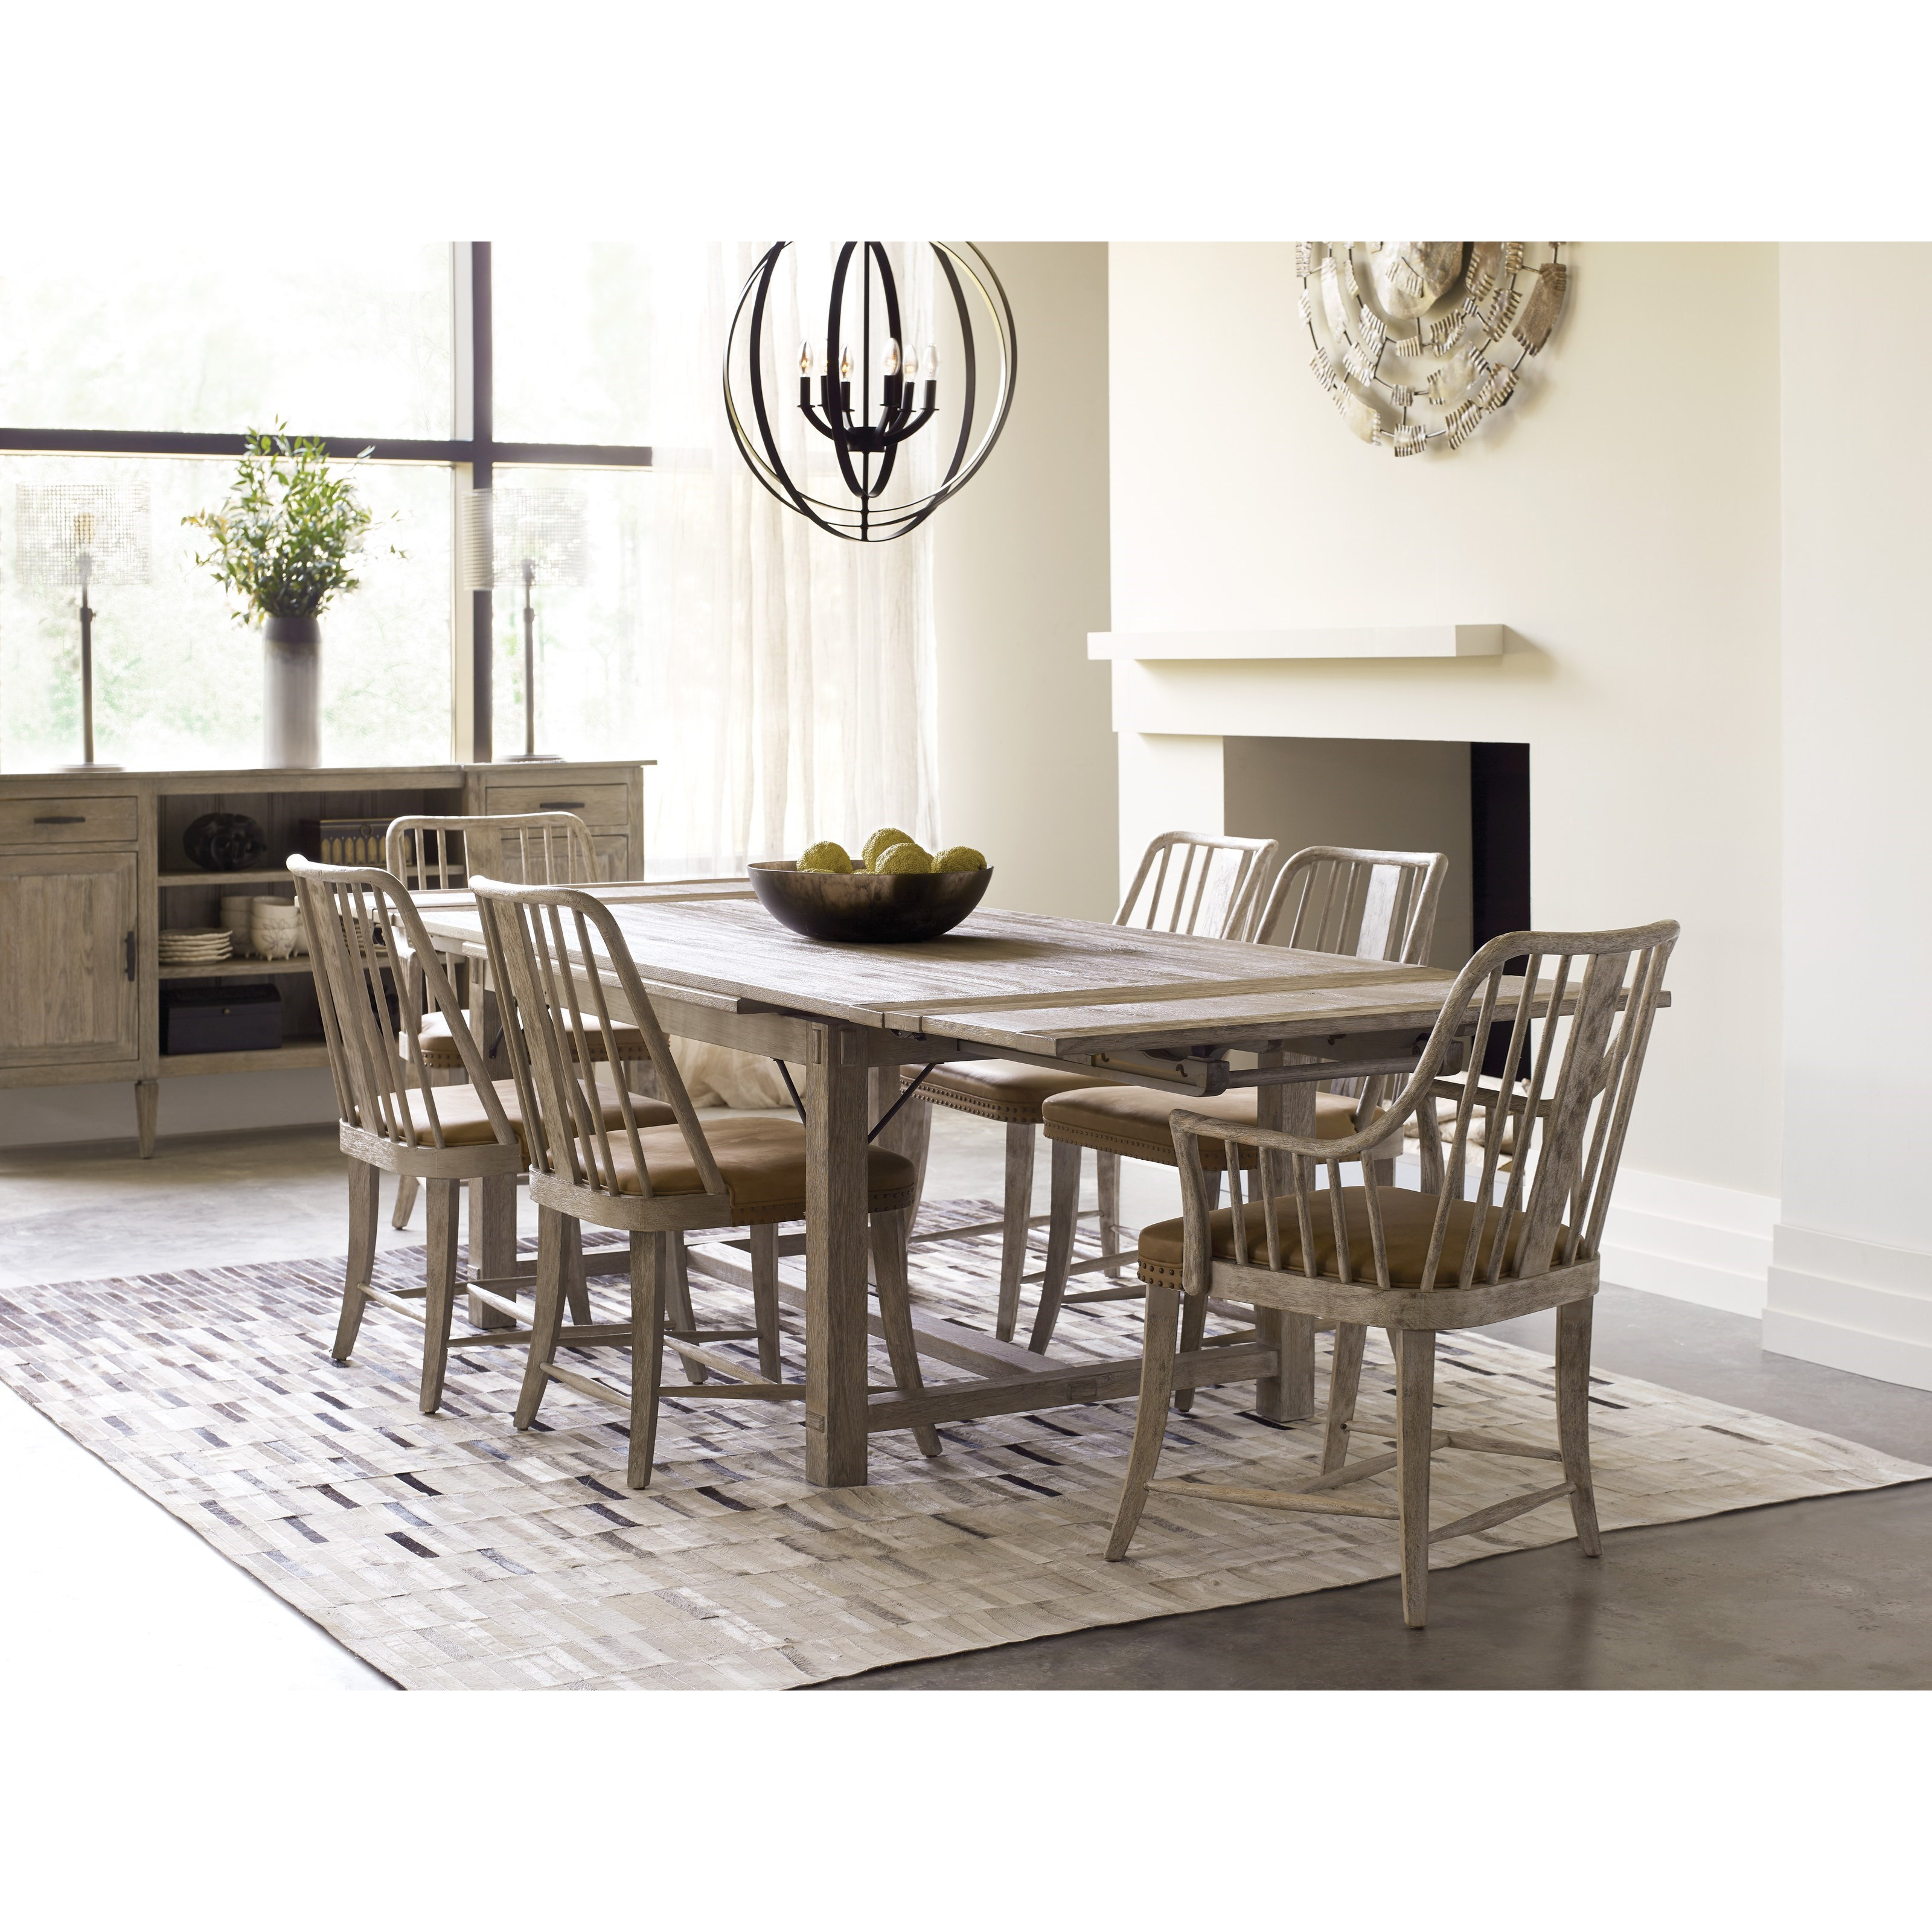 Kincaid Dining Room Set: Kincaid Furniture Trails Relaxed Vintage Seven Piece Dining Set